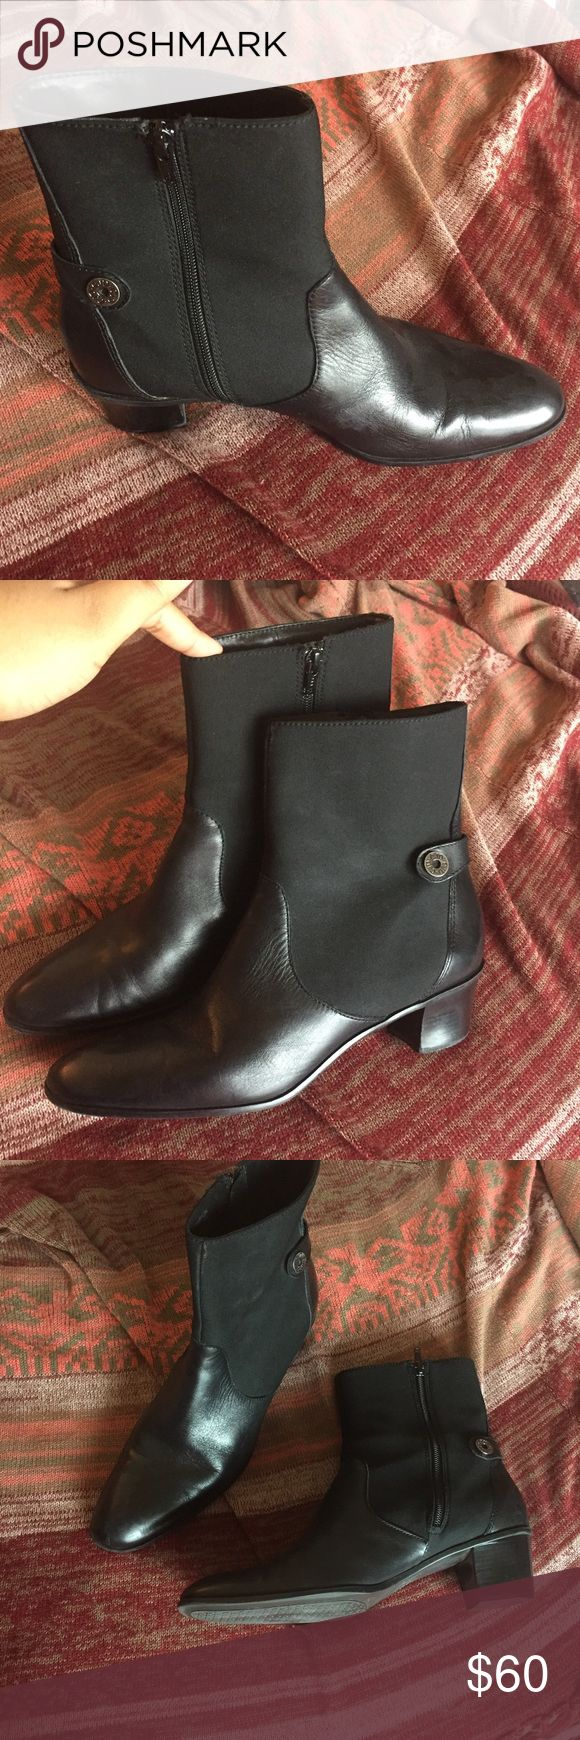 Circa Joan David Leather Western Bootie In excellent condition/ only worn a few times. Very comfortable. Genuine leather on foot. Joan & David Shoes Ankle Boots & Booties